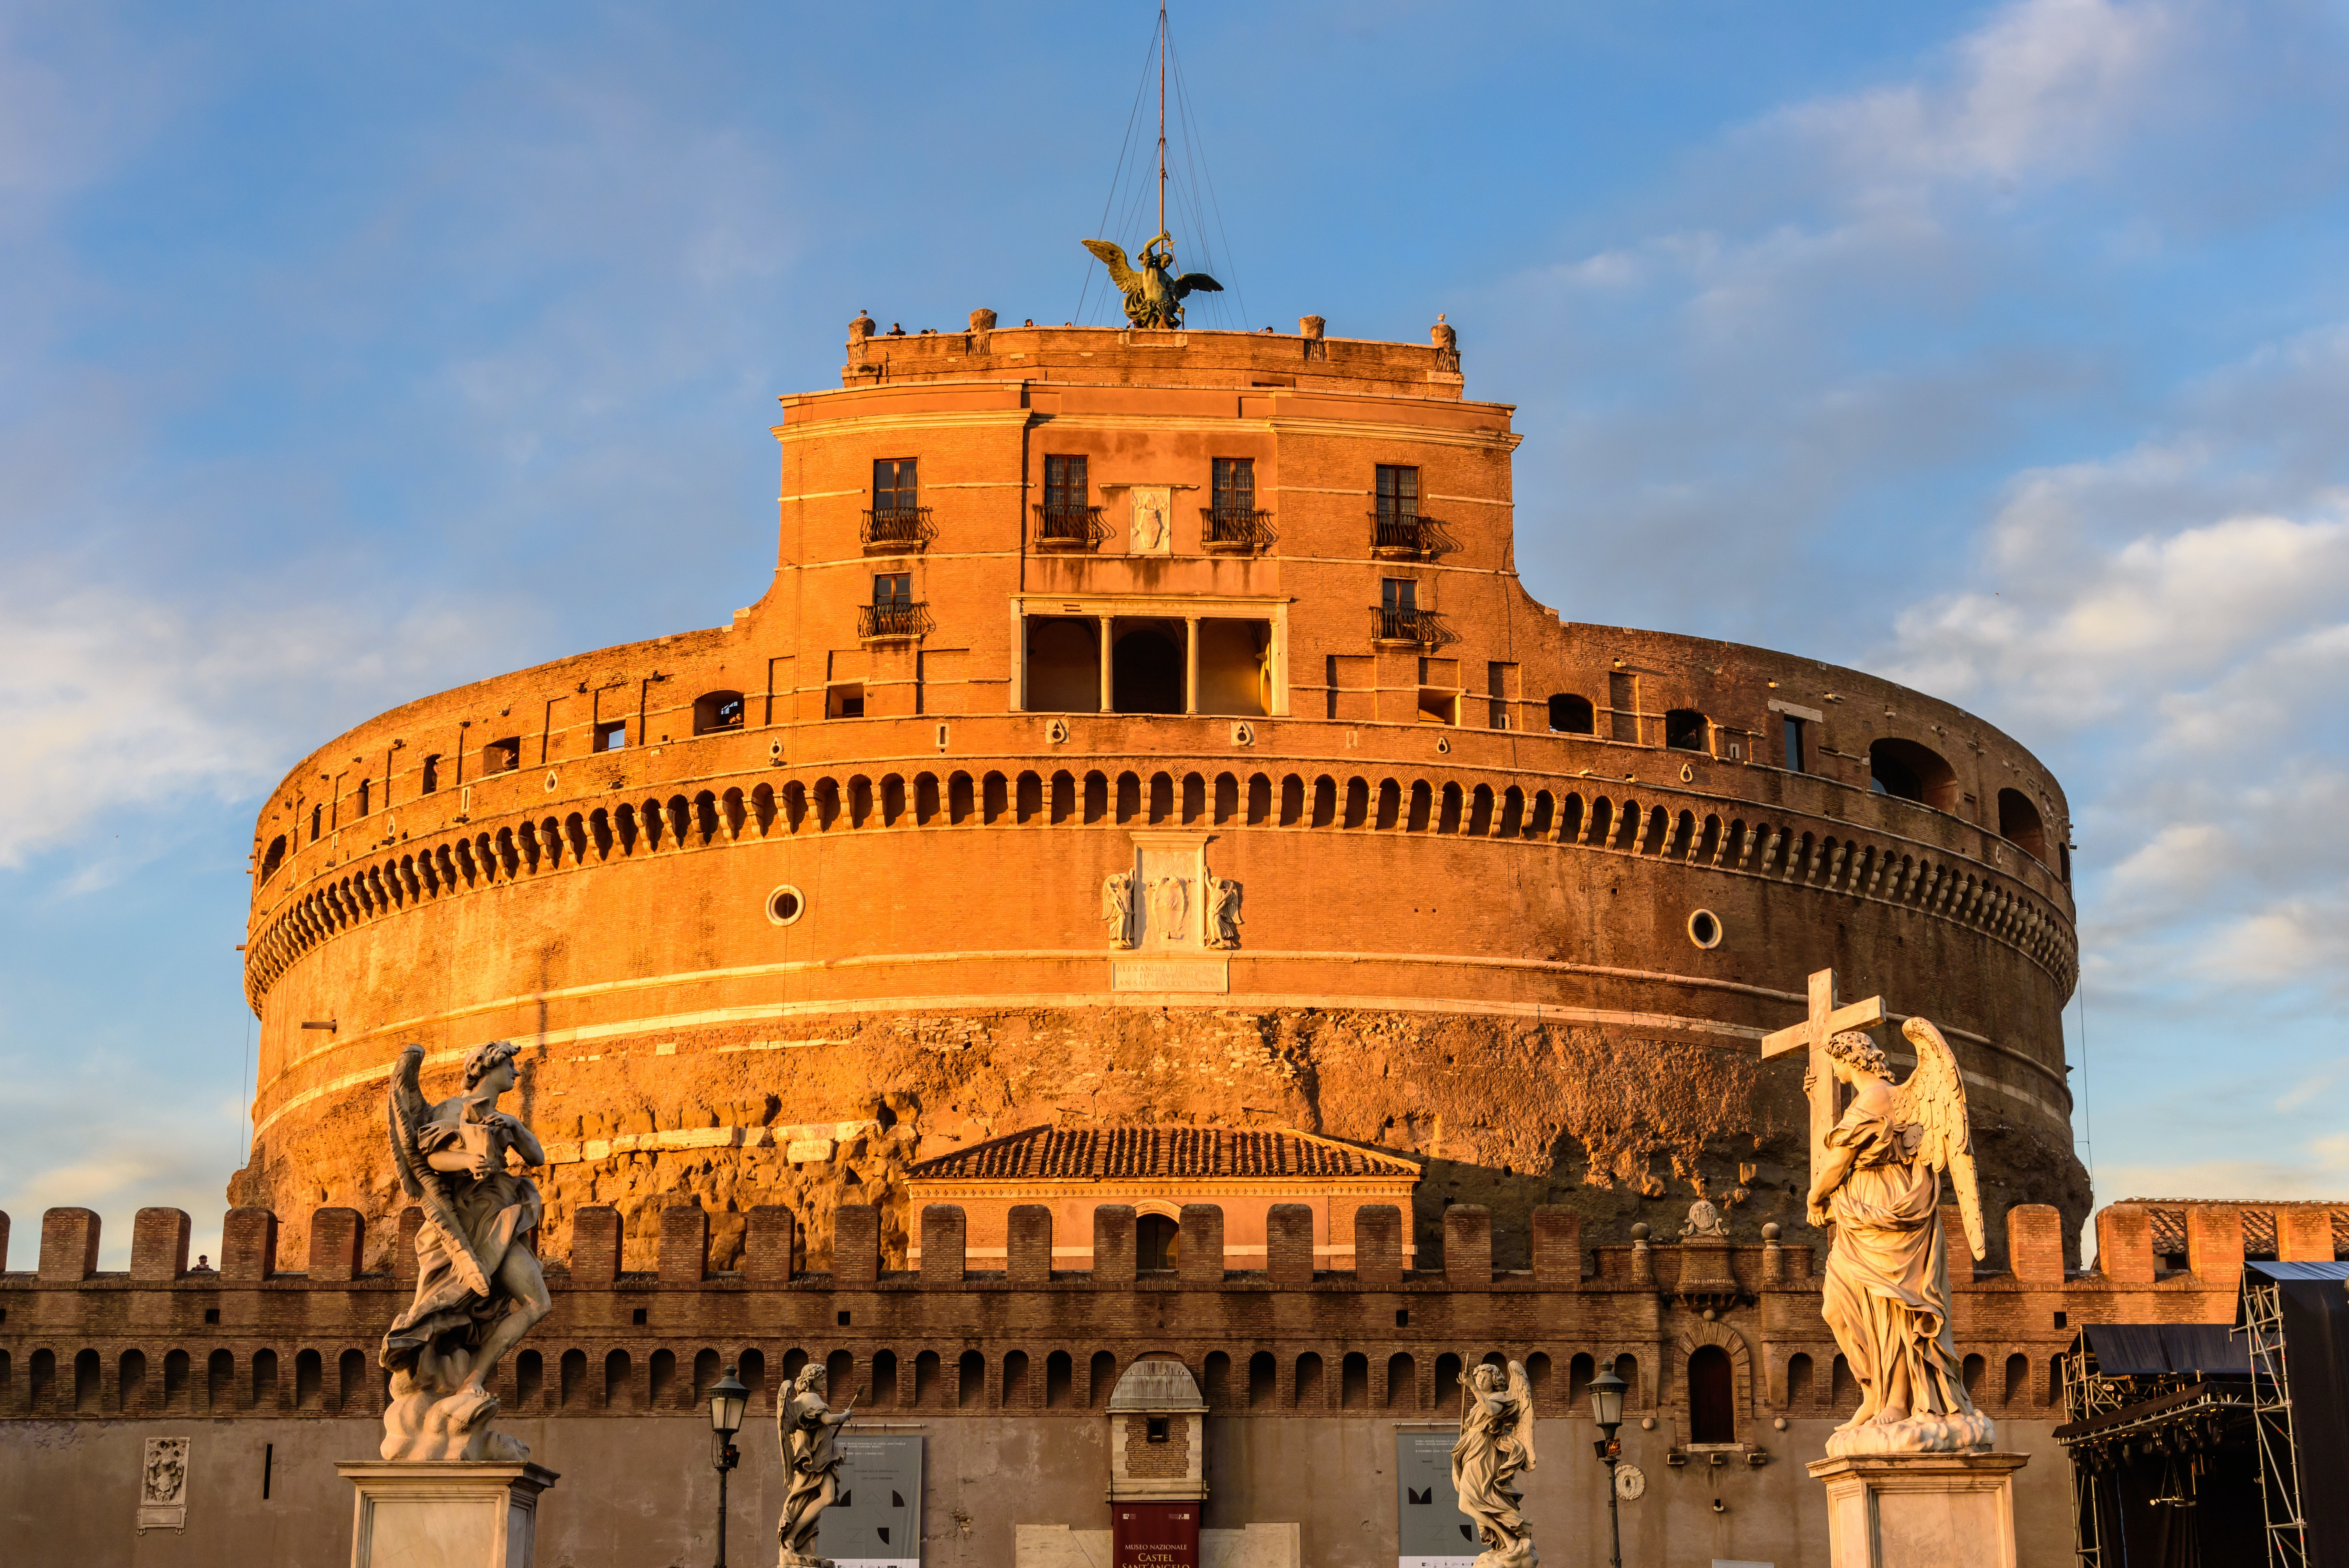 santo ngelo chatrooms Find cheap fares for flights from santo angelo to beidah on ctrip and win big service chat usd you can search for available flights and hotel rooms.